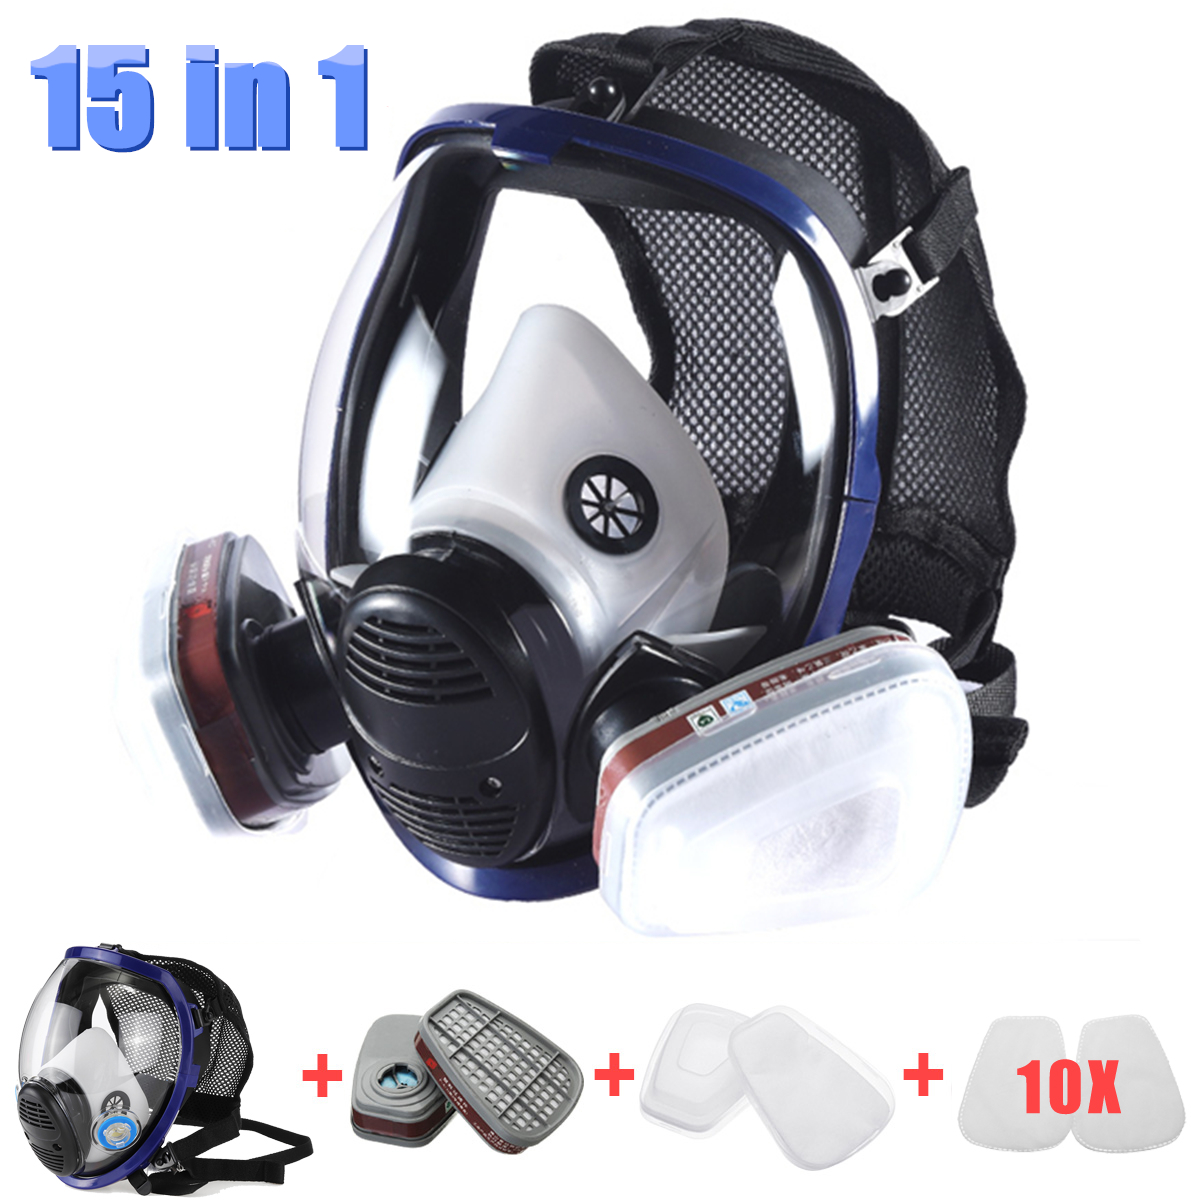 15 In 1 Gas Mask for 6800 Full Face Facepiece Respirator Painting Spraying Chemical Laboratory Medical